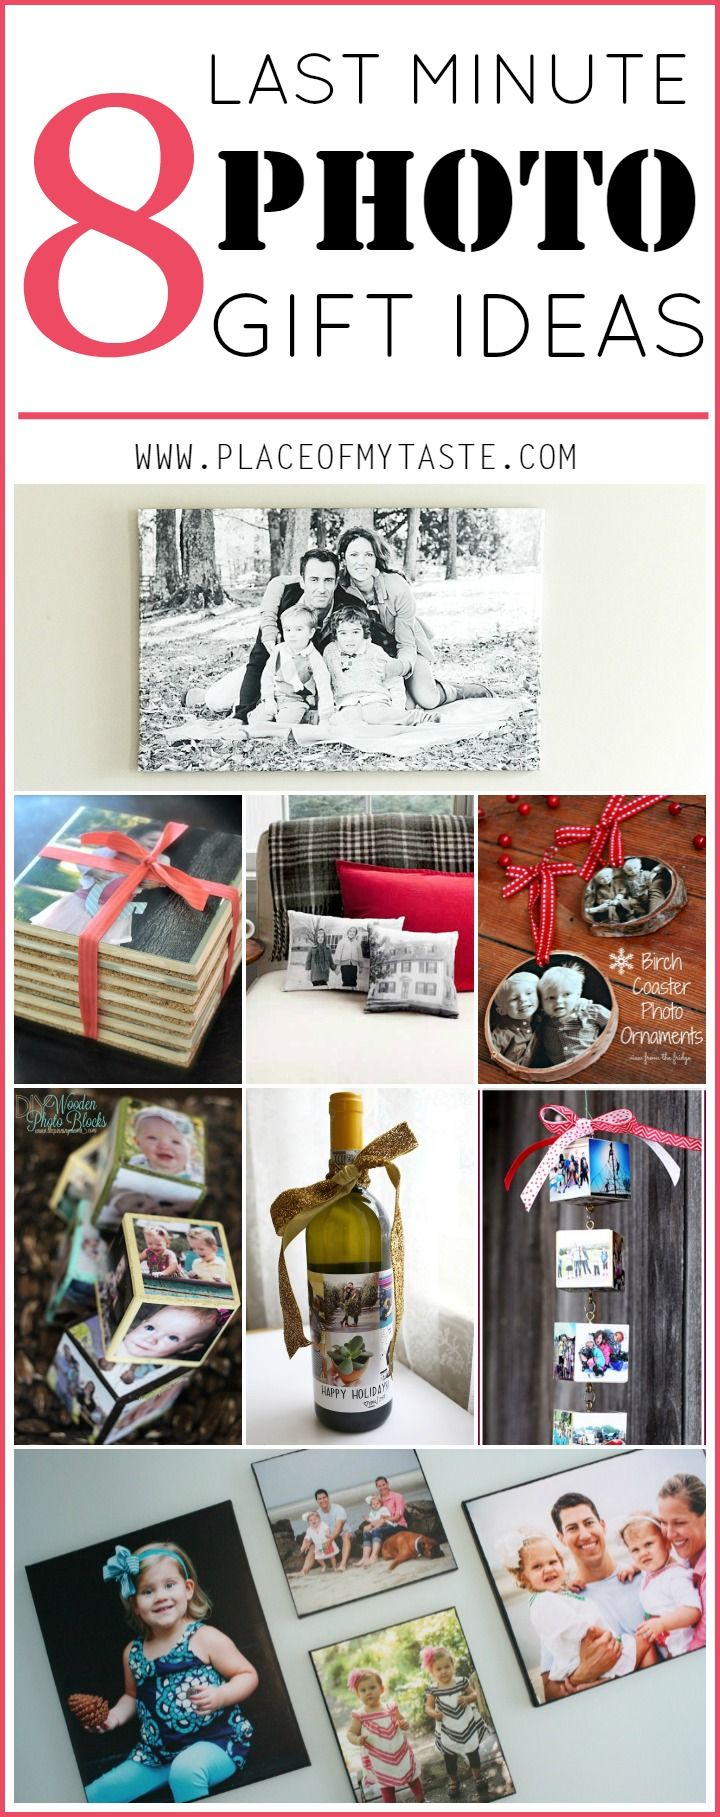 Christmas gift ideas! Check out these last minute photo gift ideas that are perfect for Christmas!